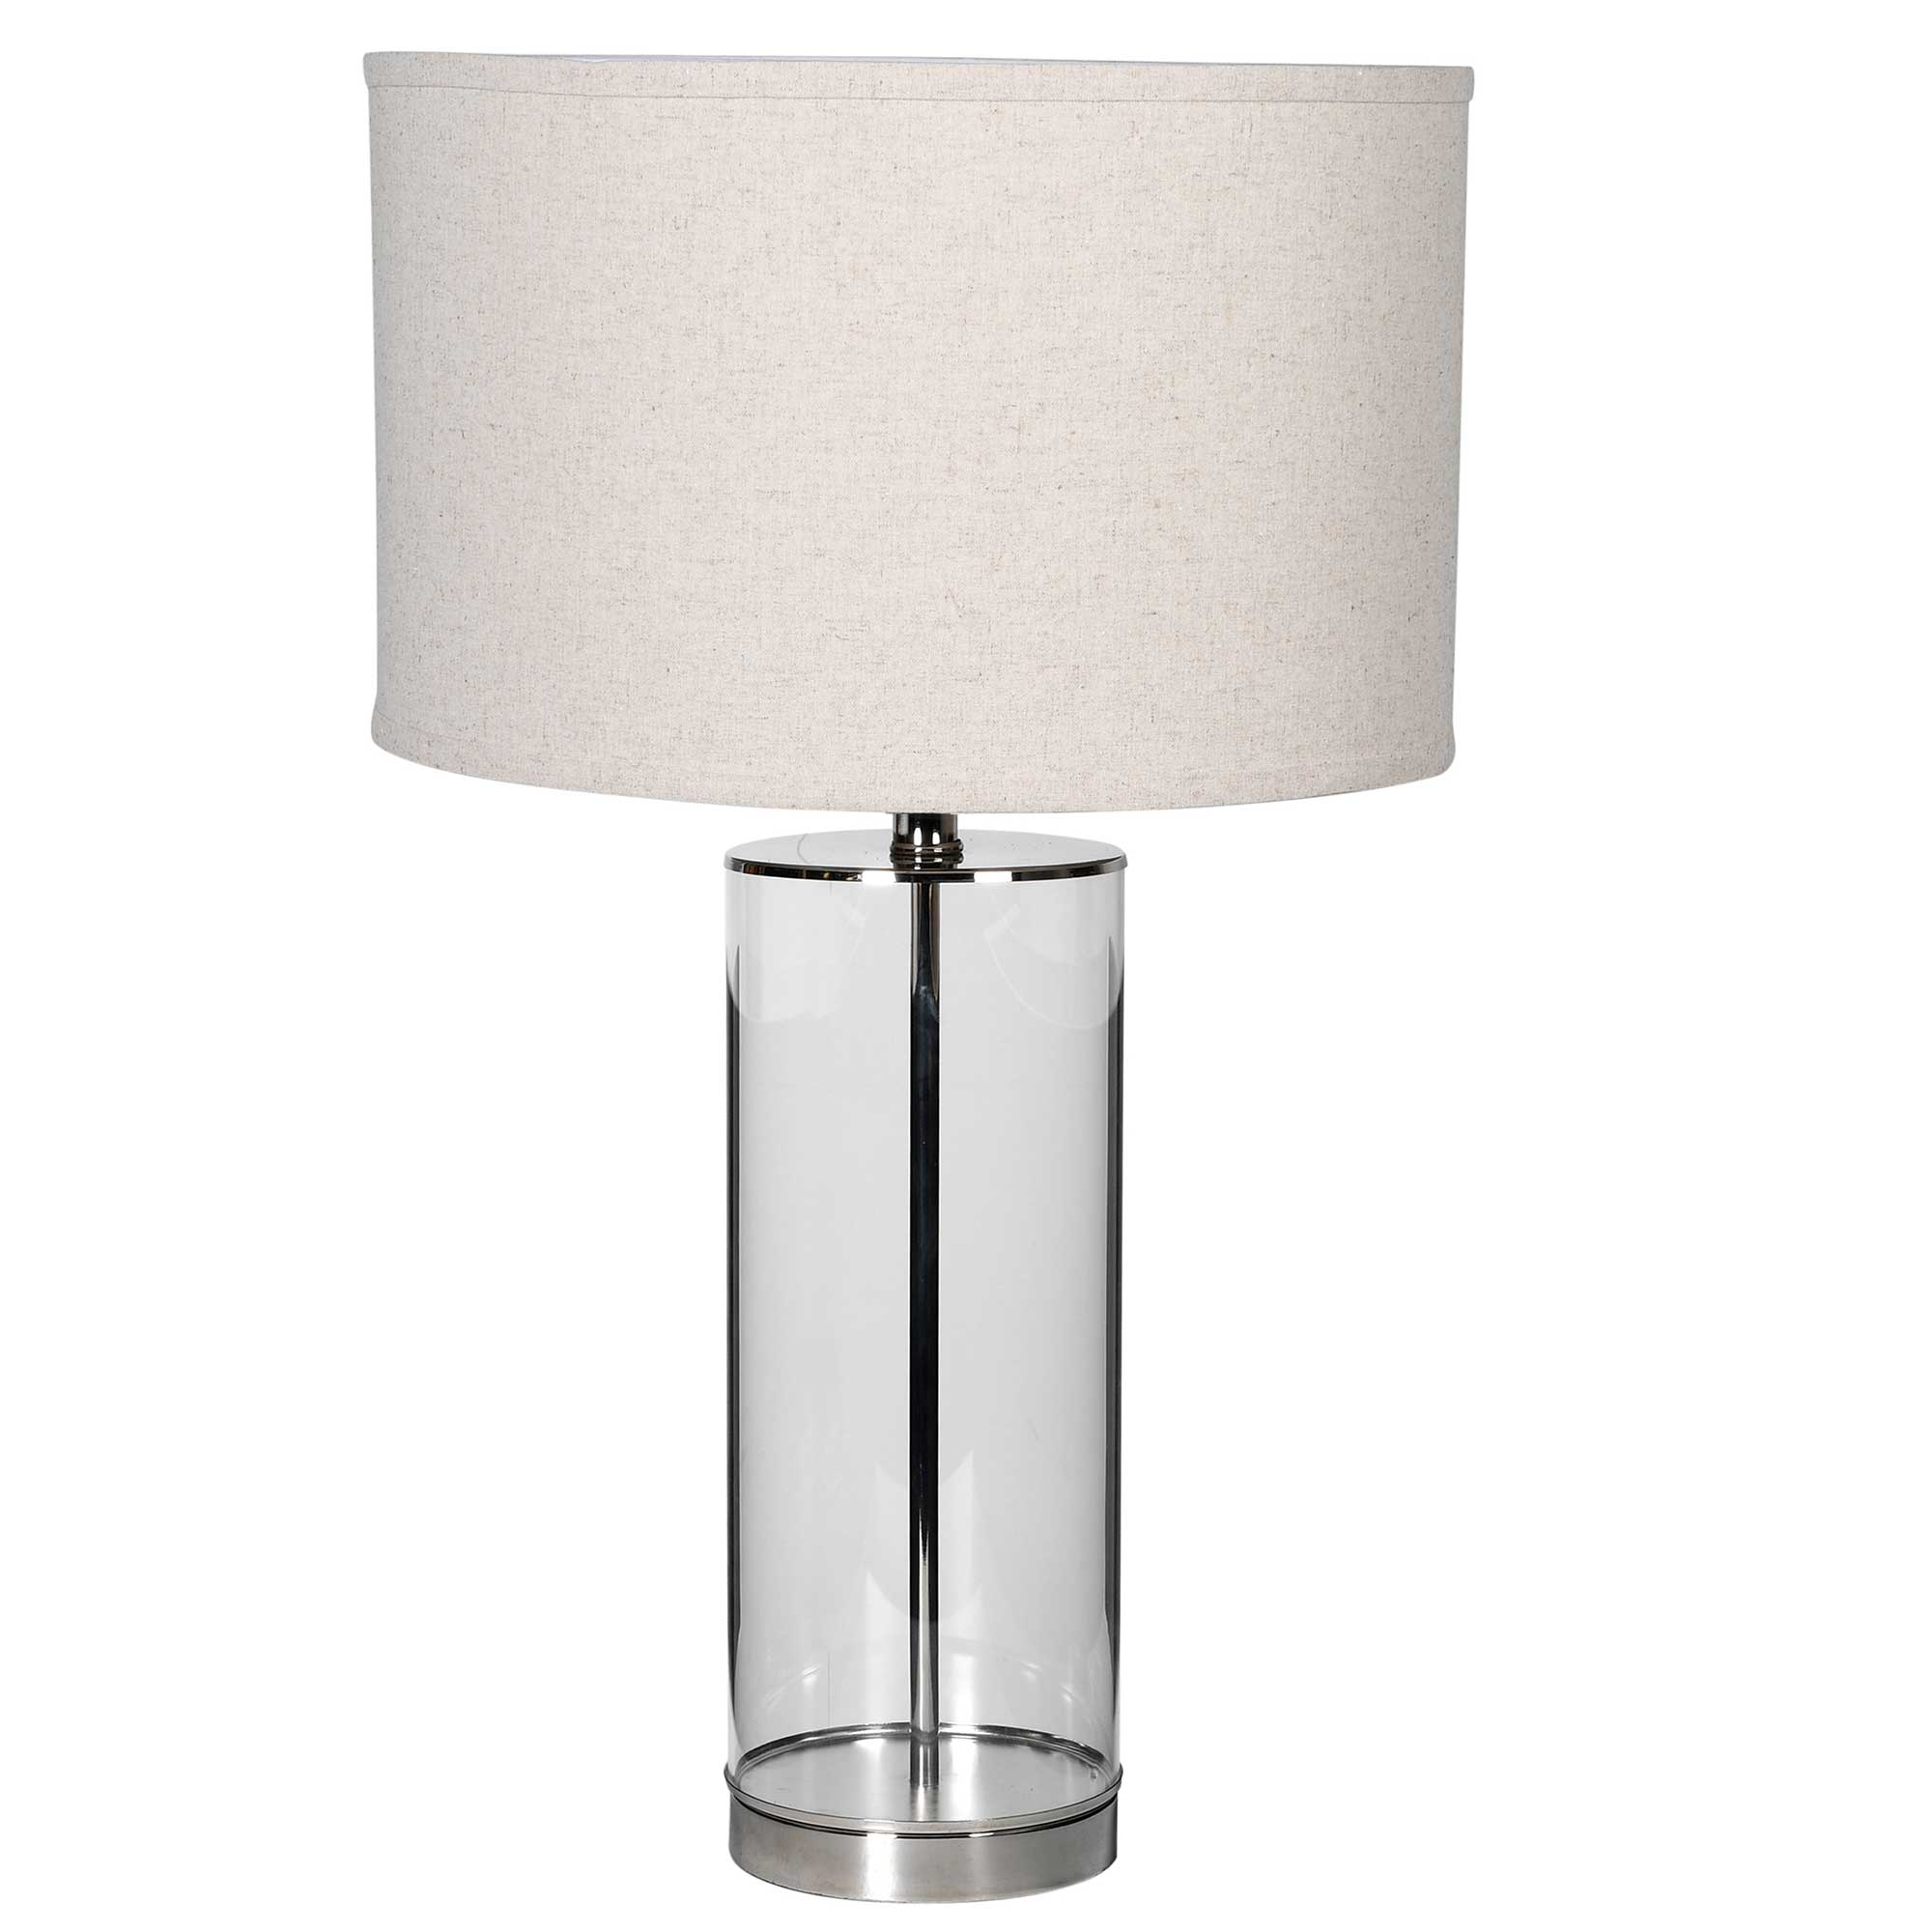 Table lamps in glass